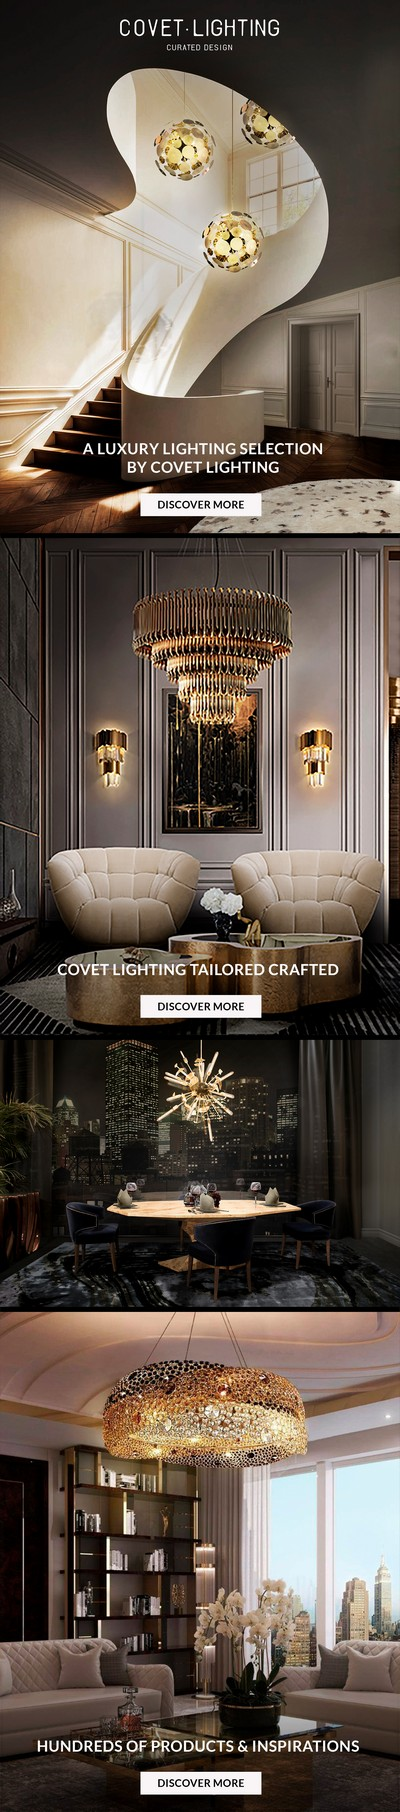 Side Banner Moodboard Covet Lighting  Home Page sidebannermoodboardcovetlighting 203